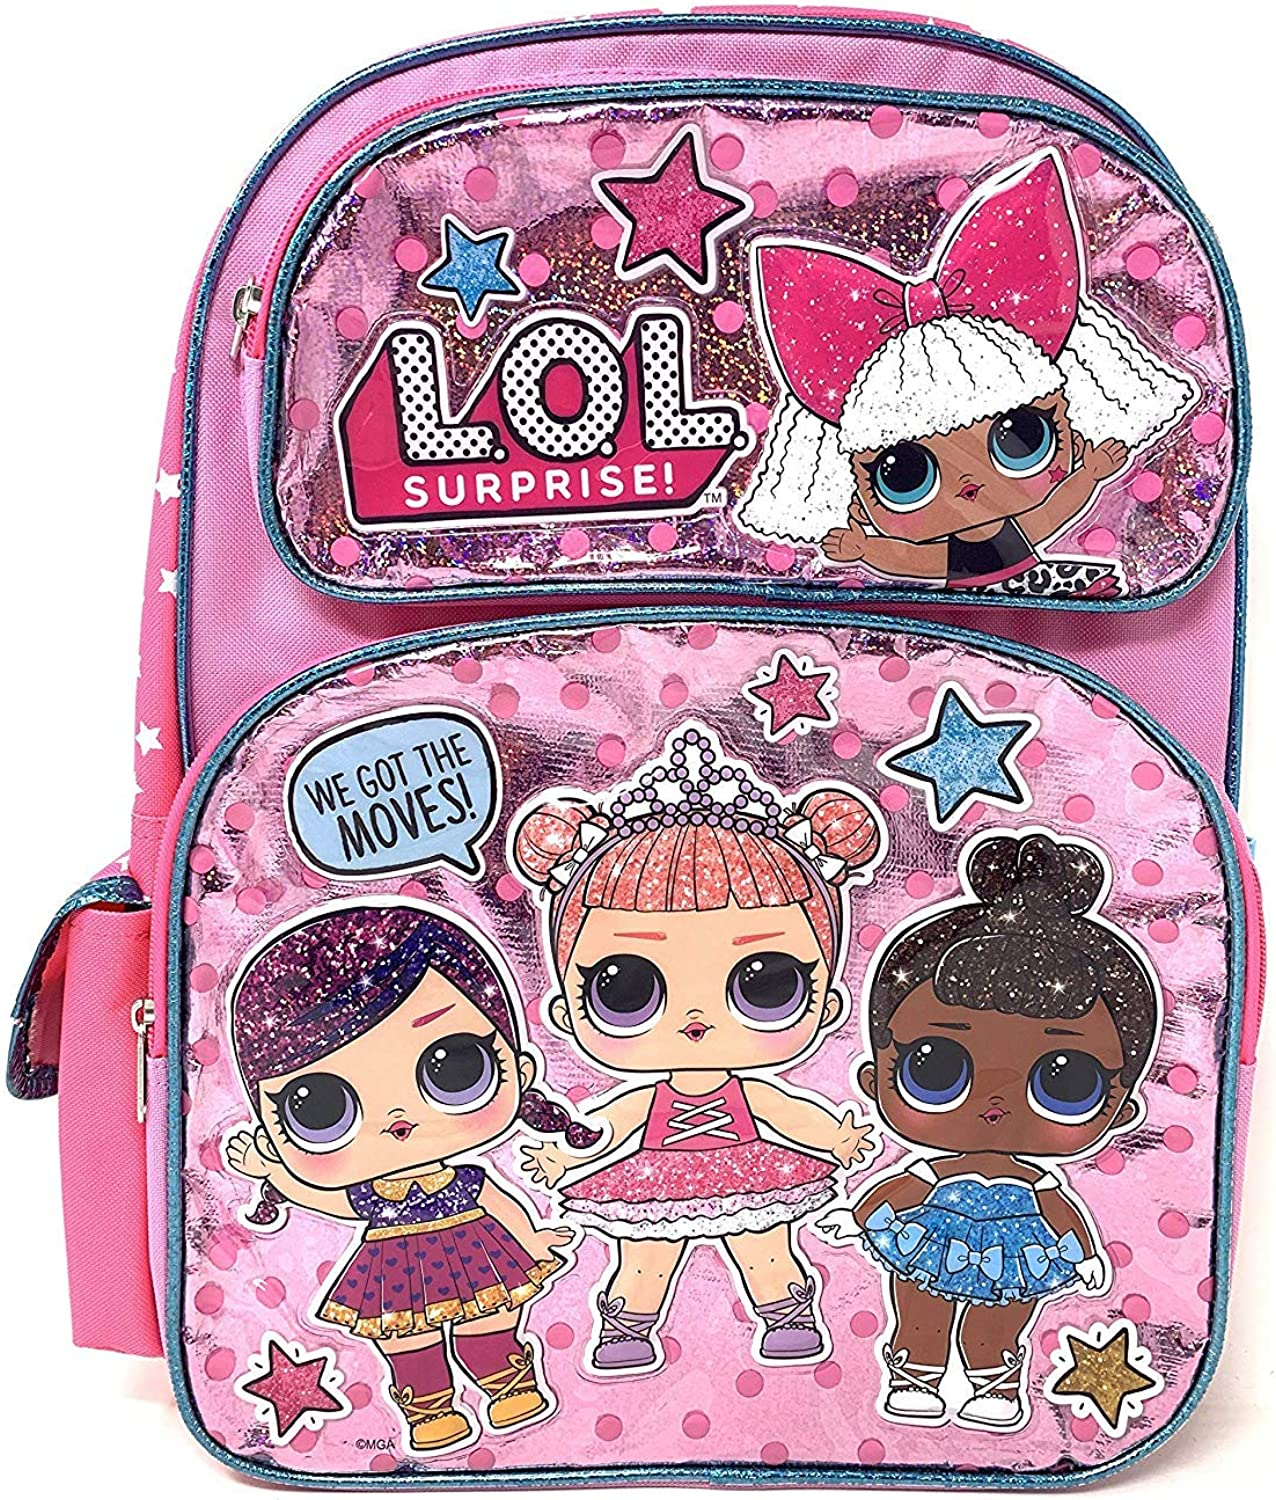 """Large LOL 16"""" WE GOT THE MOVES! Pink Shiny Girls' School Backpack A16305"""